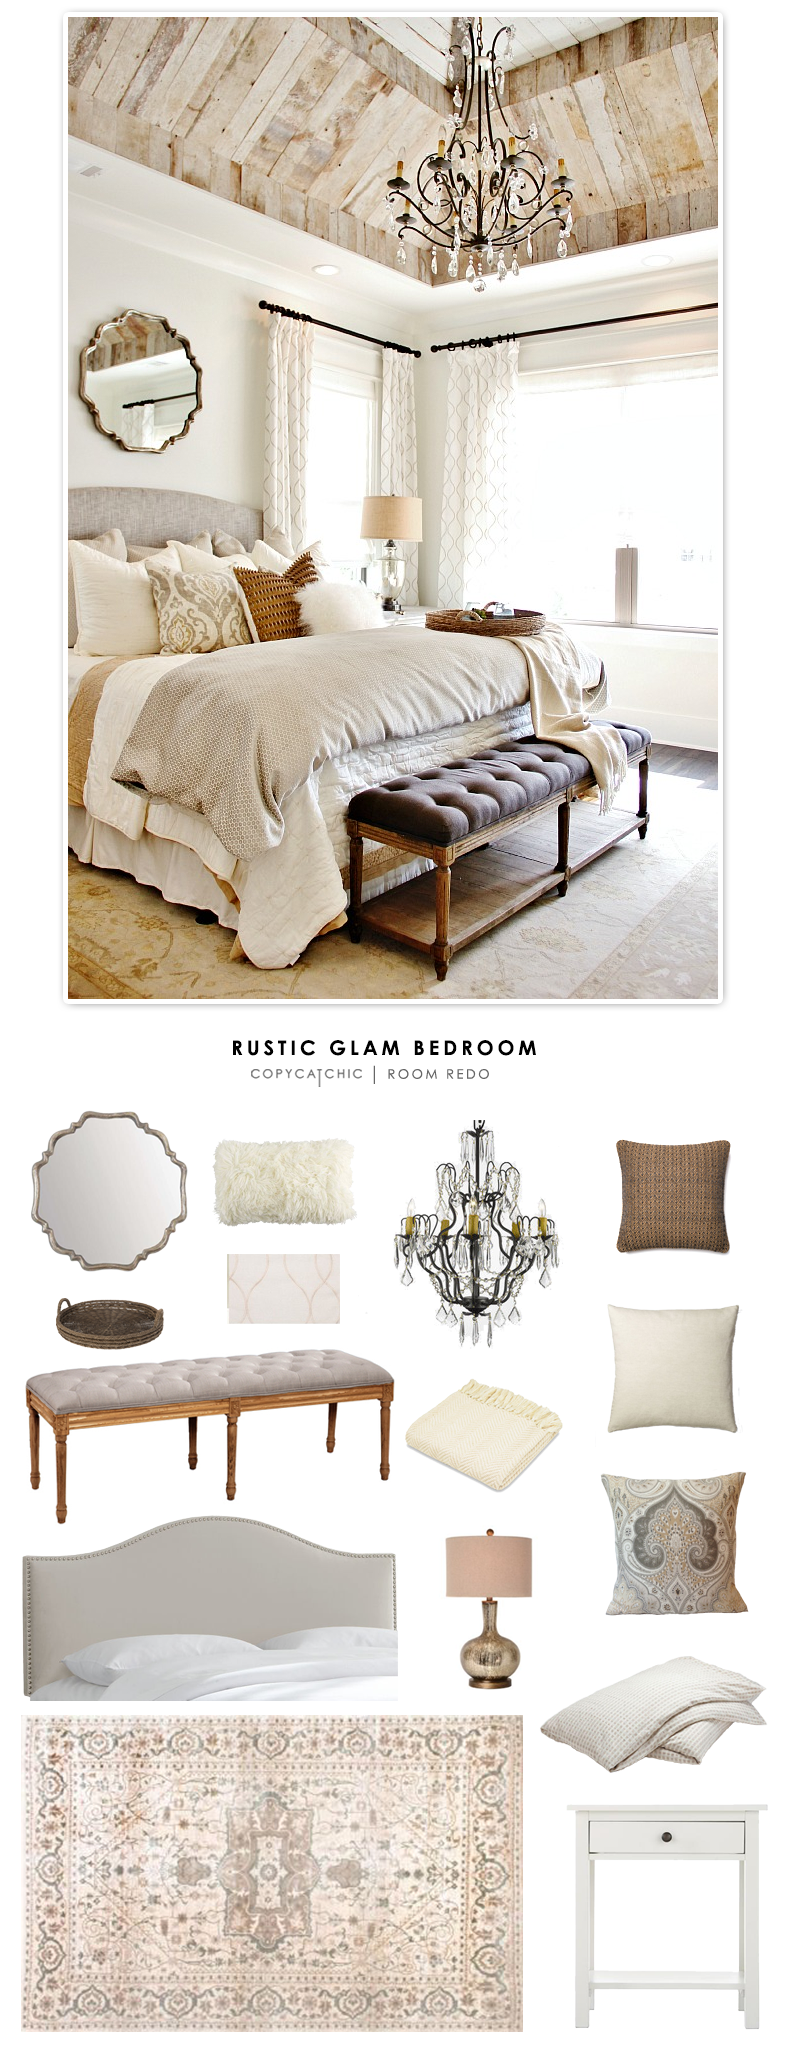 Copy Cat Chic Room Redo Rustic Glam Bedroom Copycatchic